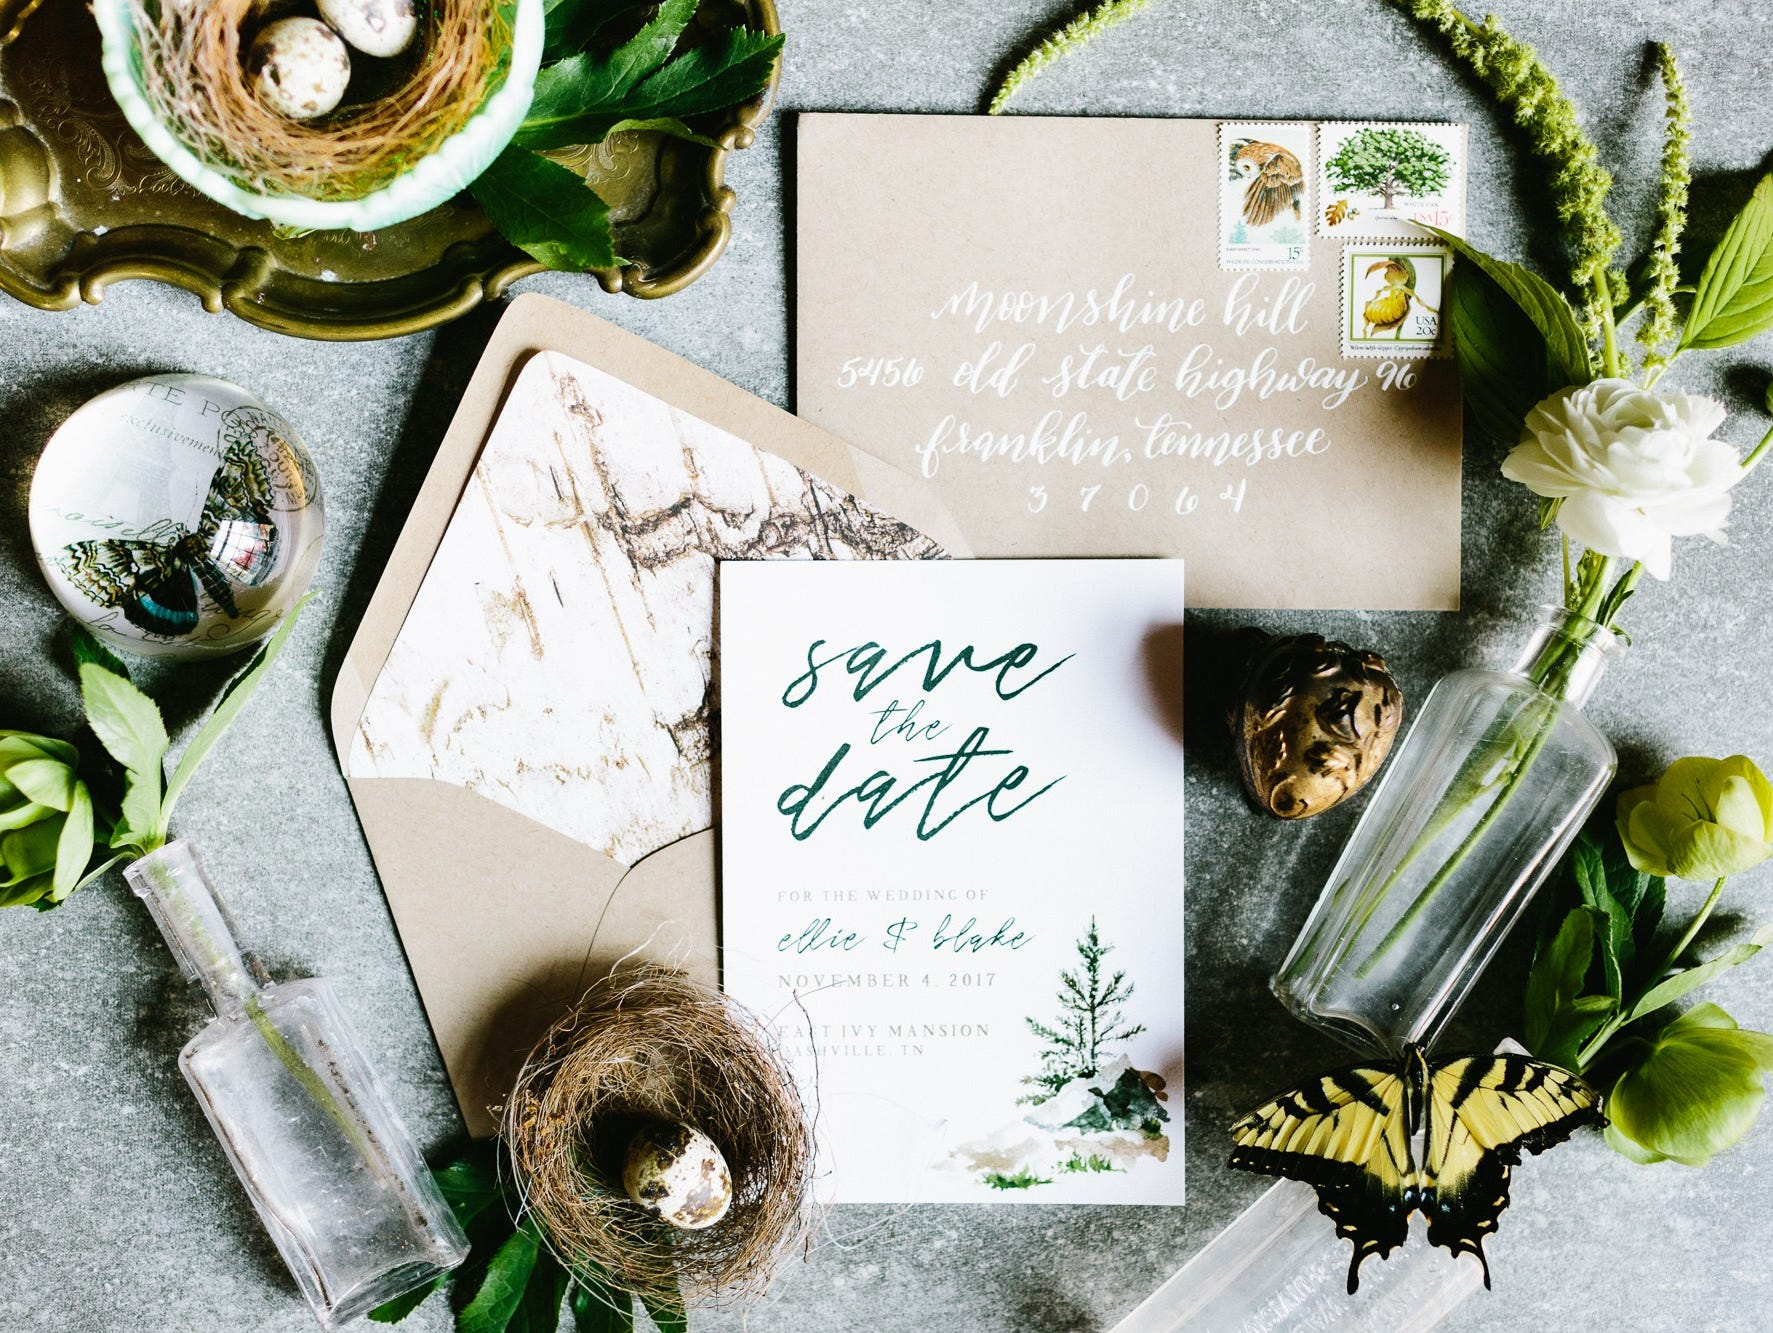 Order beautiful, hand-lettered envelopes, art, and decorations from White Ink Calligraphy.